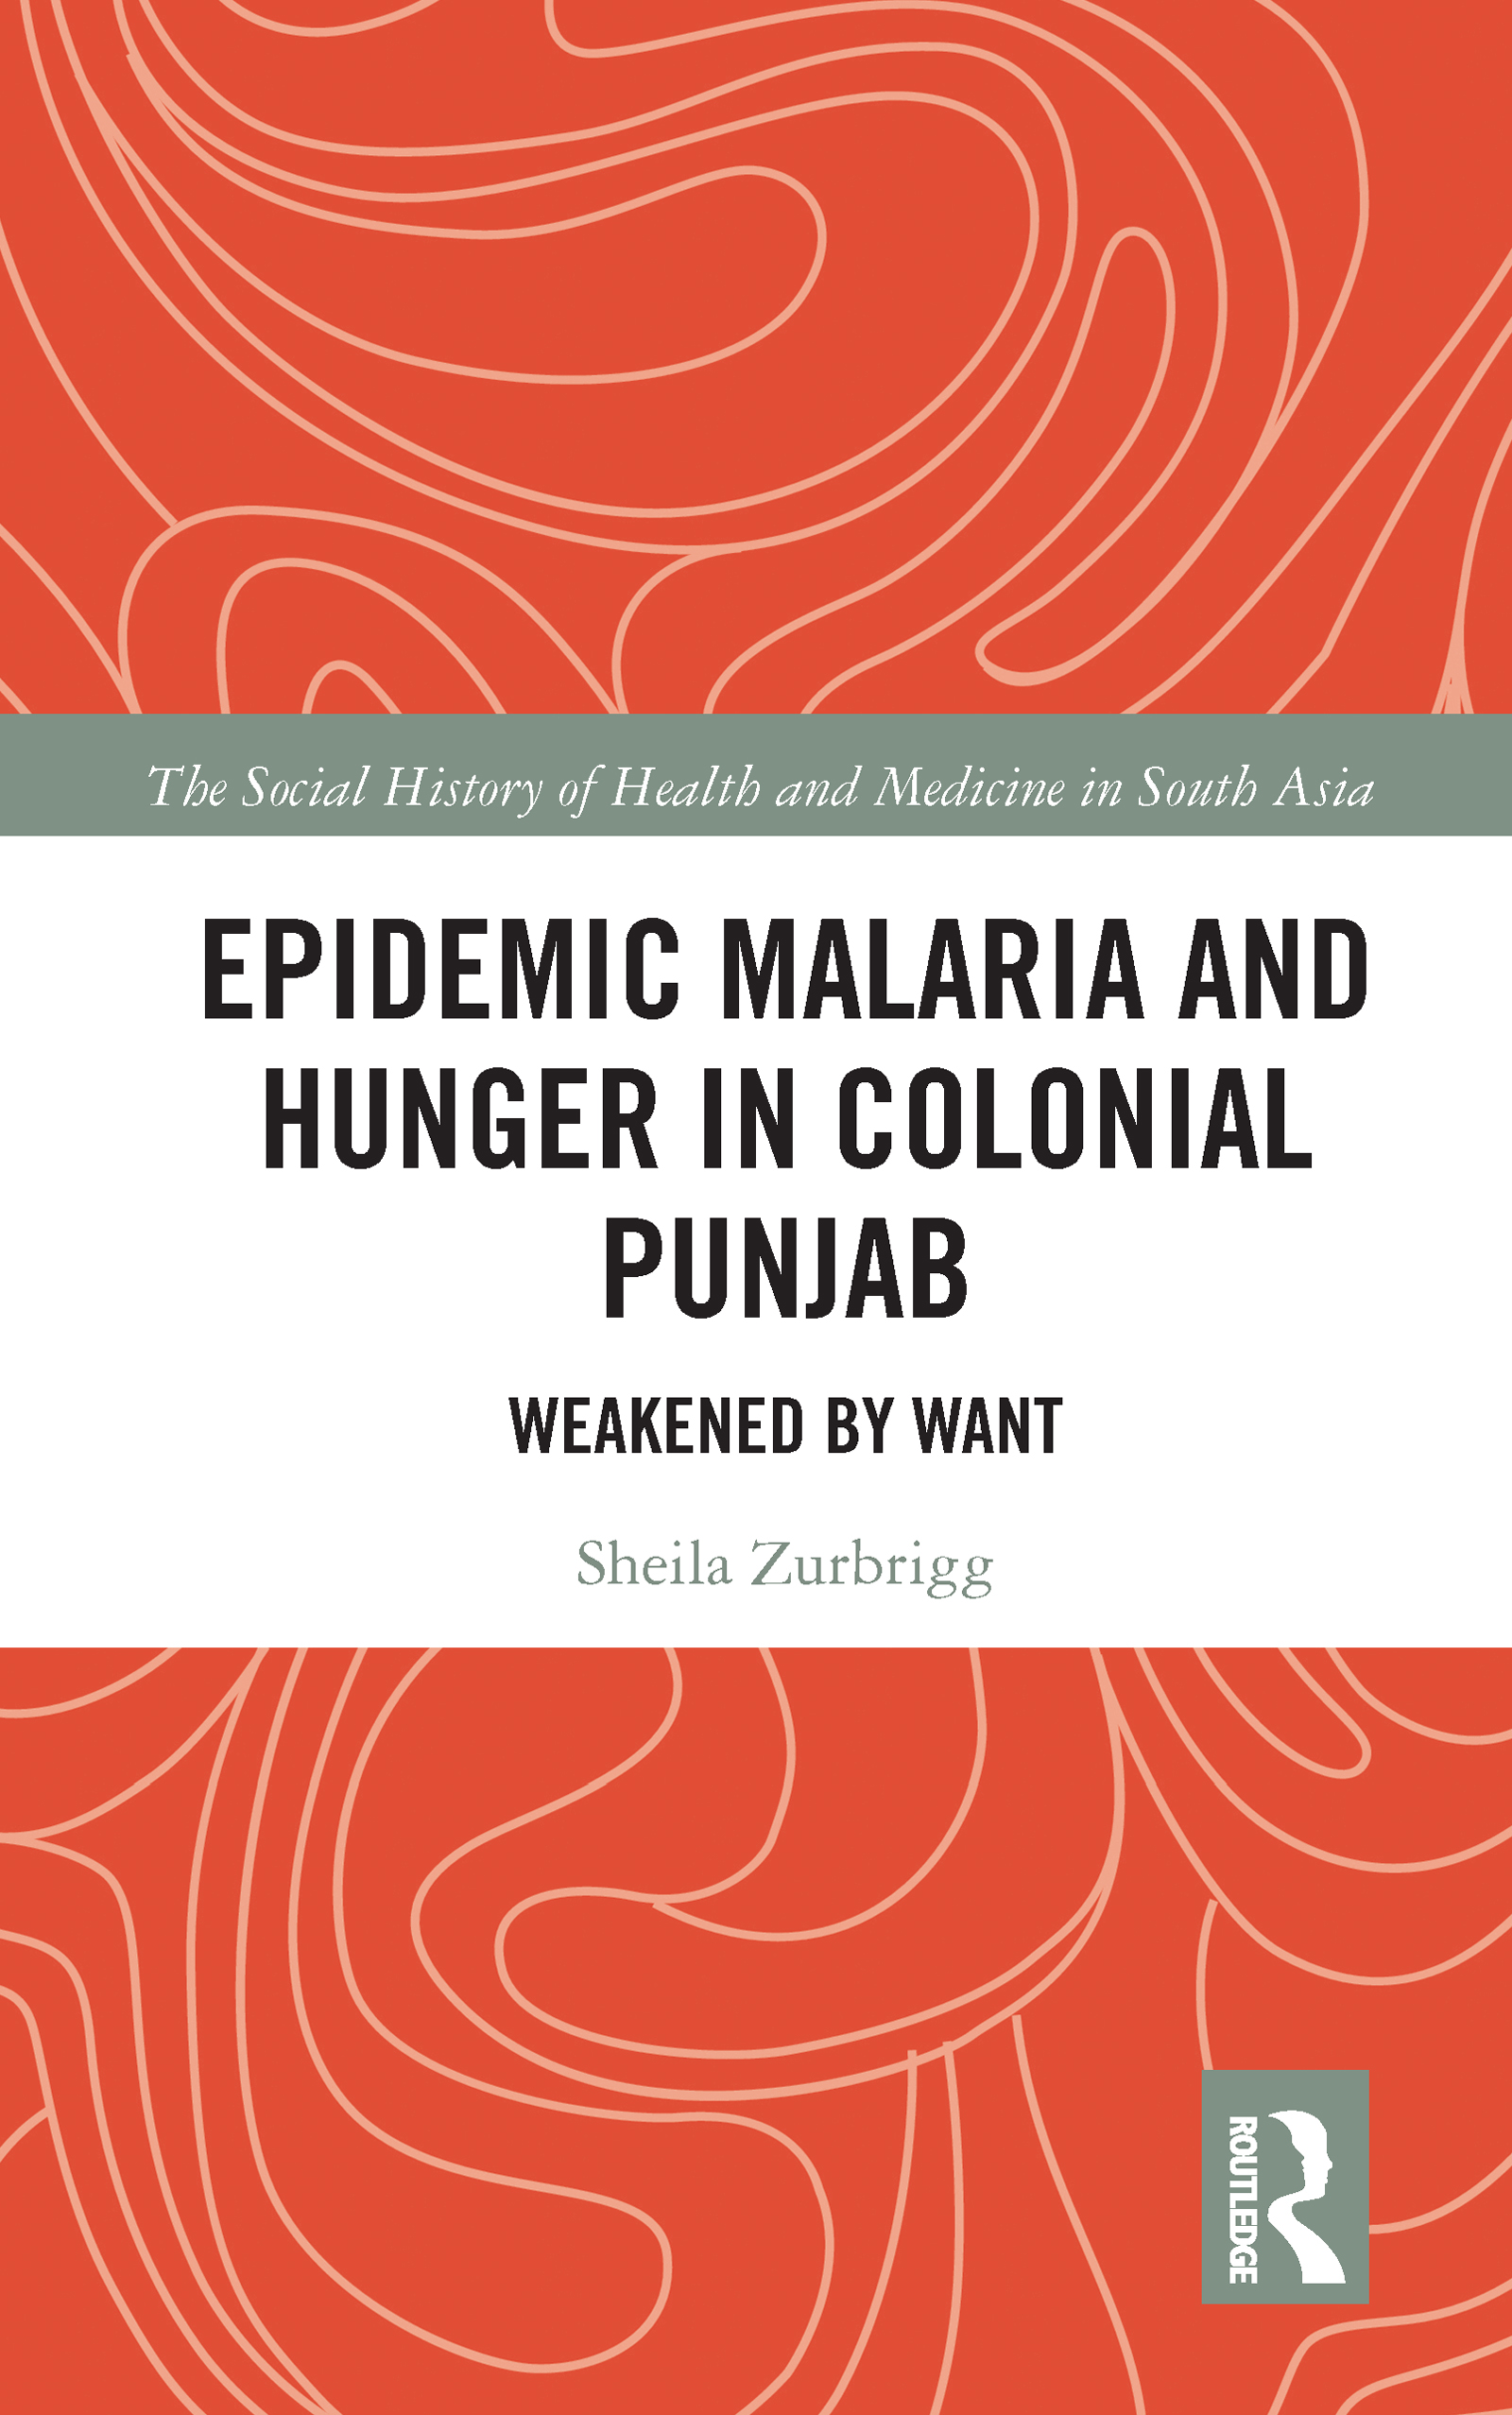 Epidemic Malaria and Hunger in Colonial Punjab